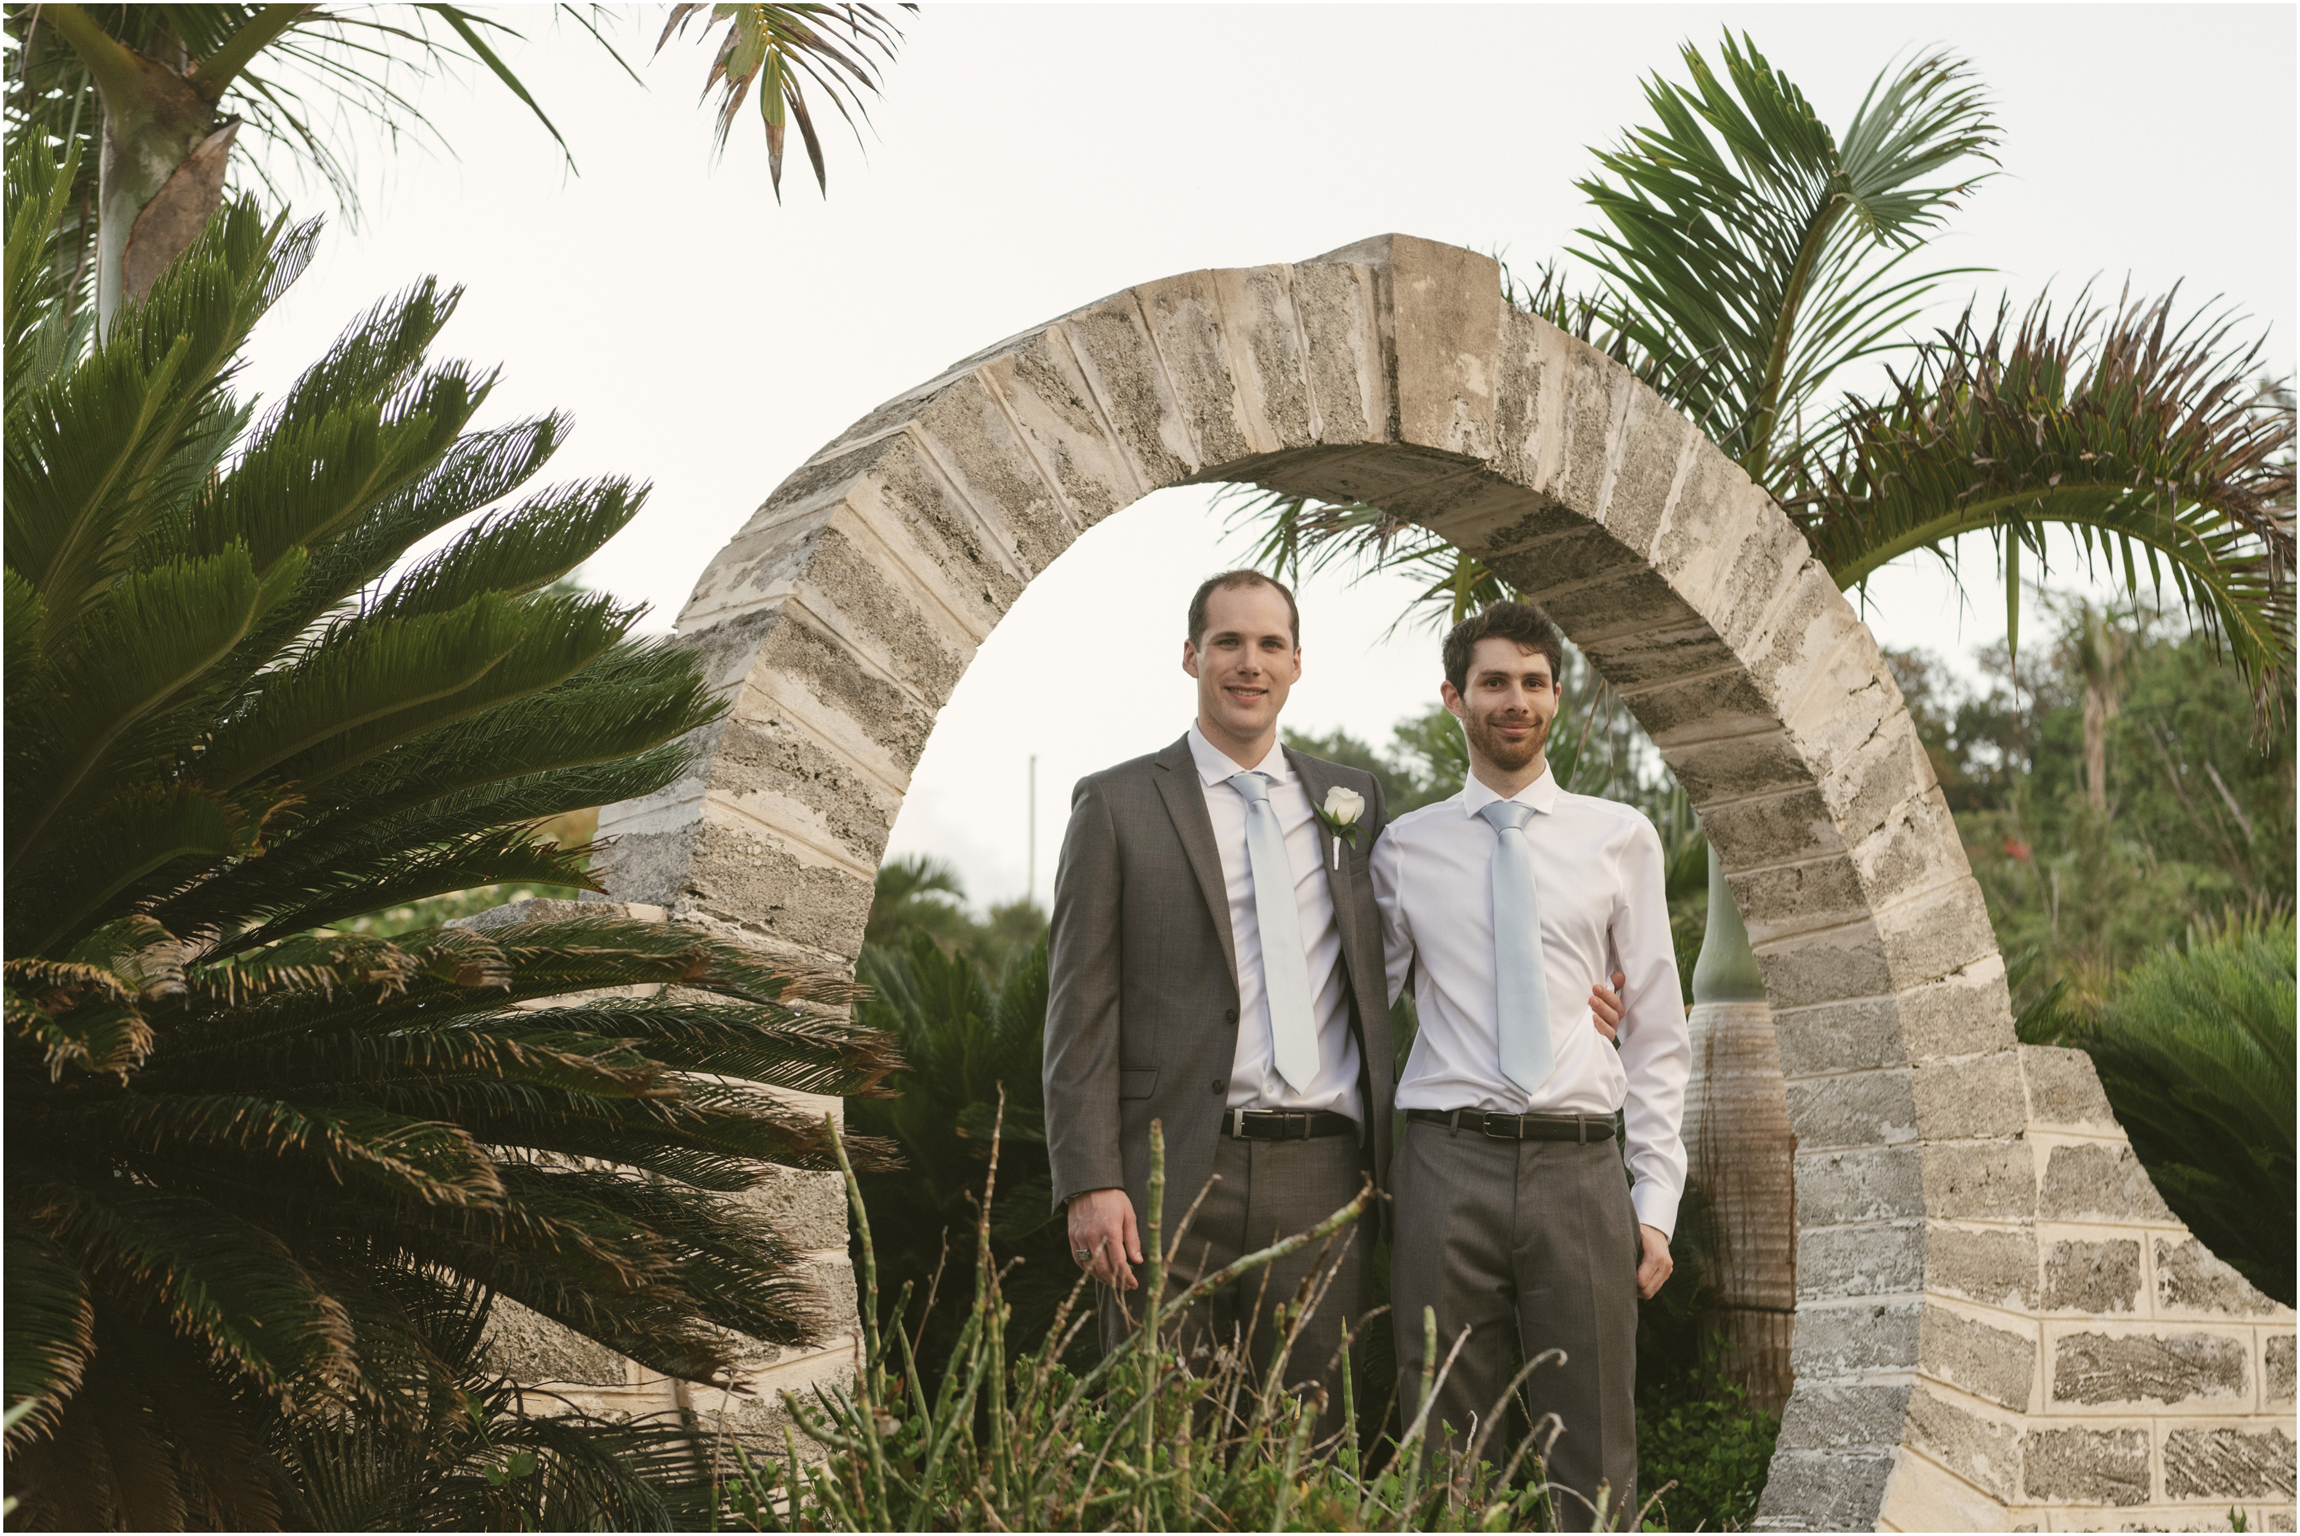 ©FianderFoto_Caribbean_Wedding_Photographer_The Reefs_Bermuda_Lauren_Erik_081.jpg